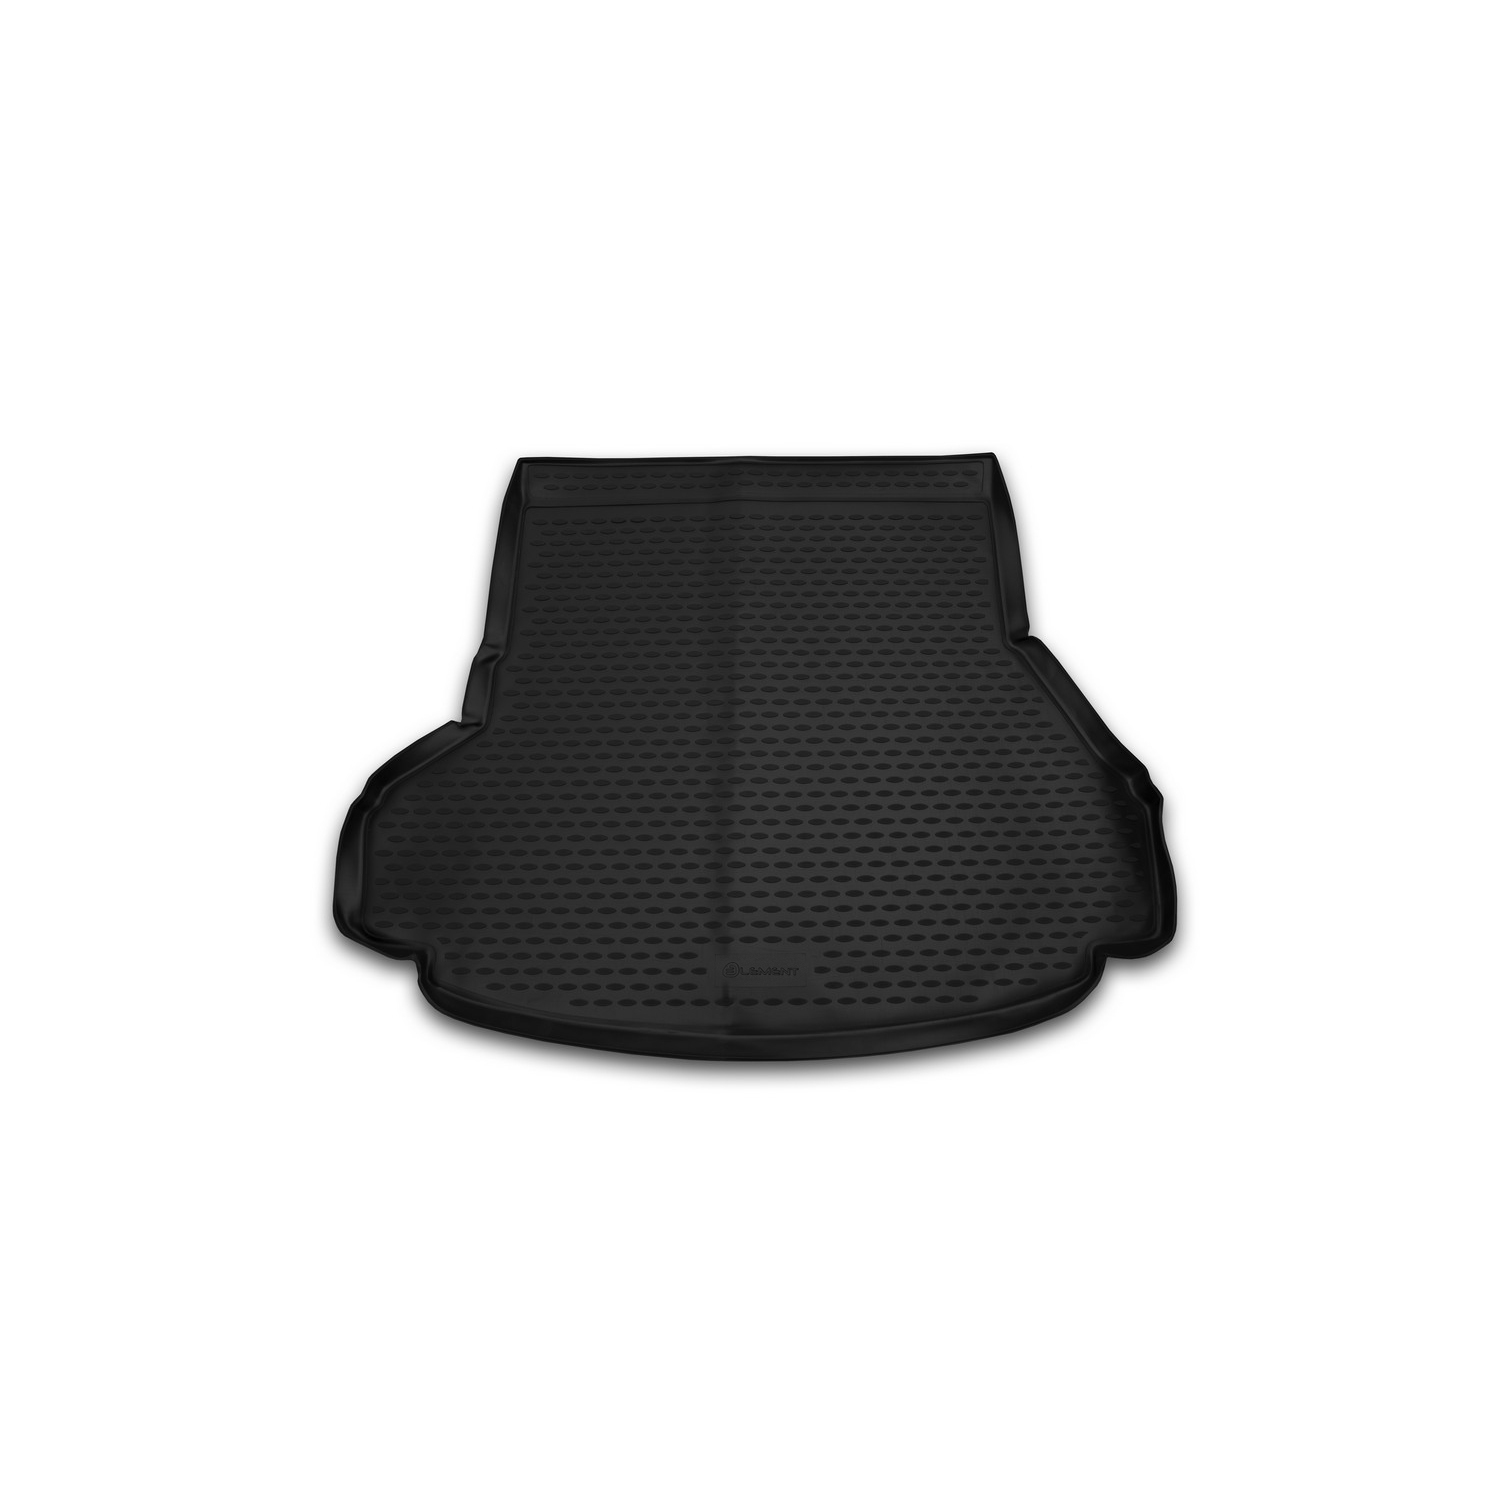 Trunk Mat For TOYOTA Avensis 01/2009-, ETS. NLC.48.19.B10